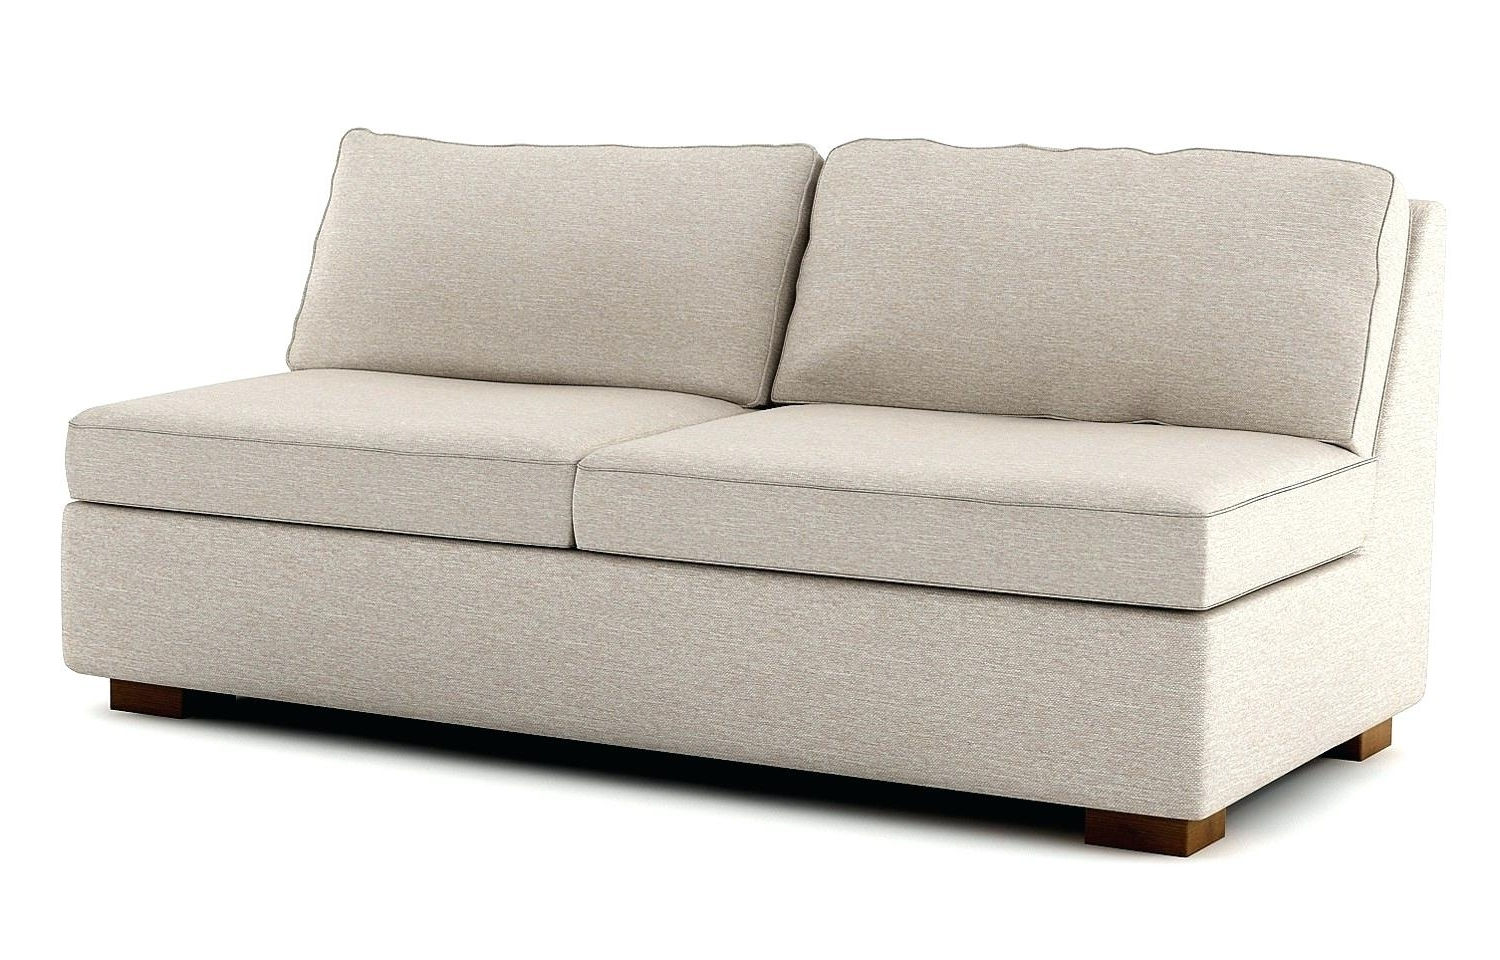 Armless Sofas Small Sofa Uk Bed And Chairs – Poikilothermia Throughout Best And Newest Small Armless Sofas (View 3 of 15)